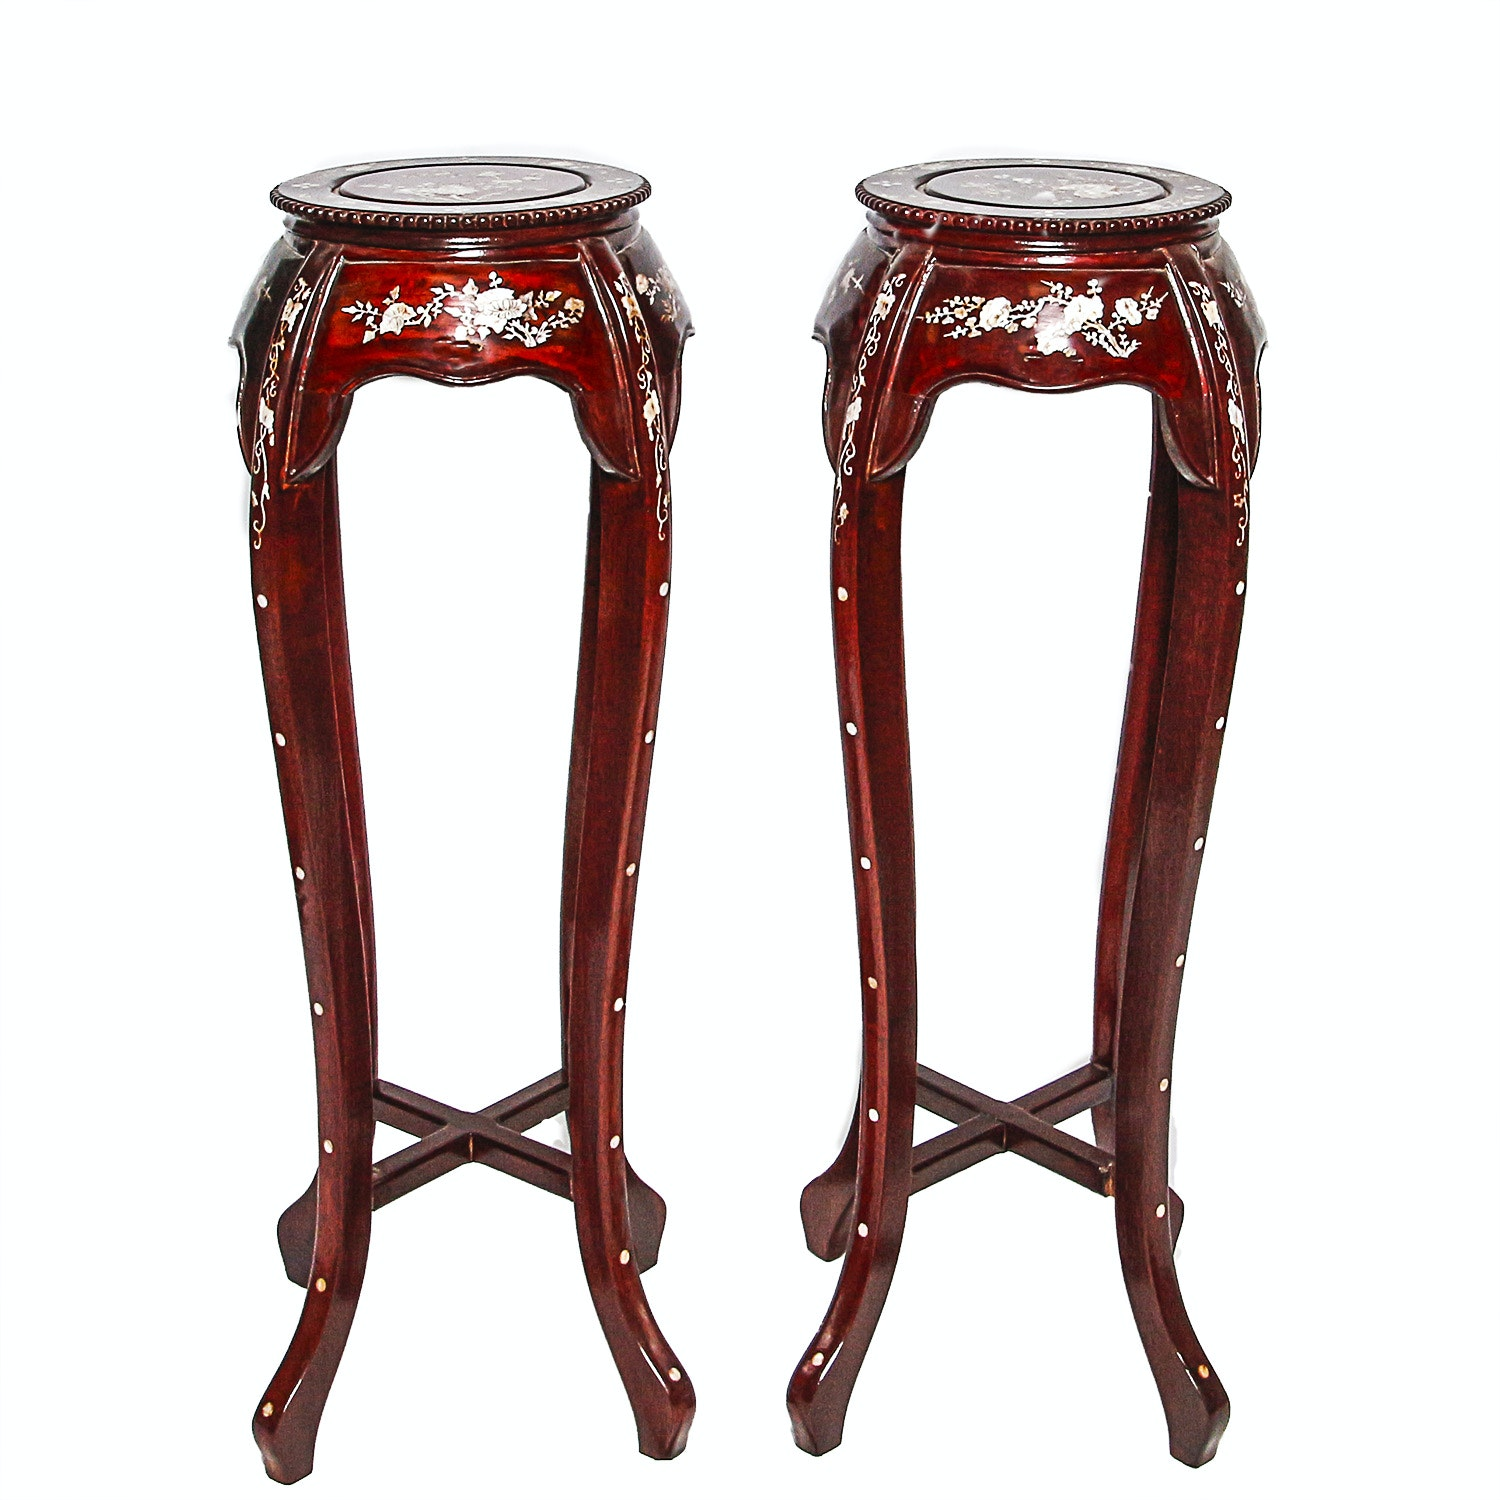 Pair of  Asian Inspired Pedestals with Shell Inlays